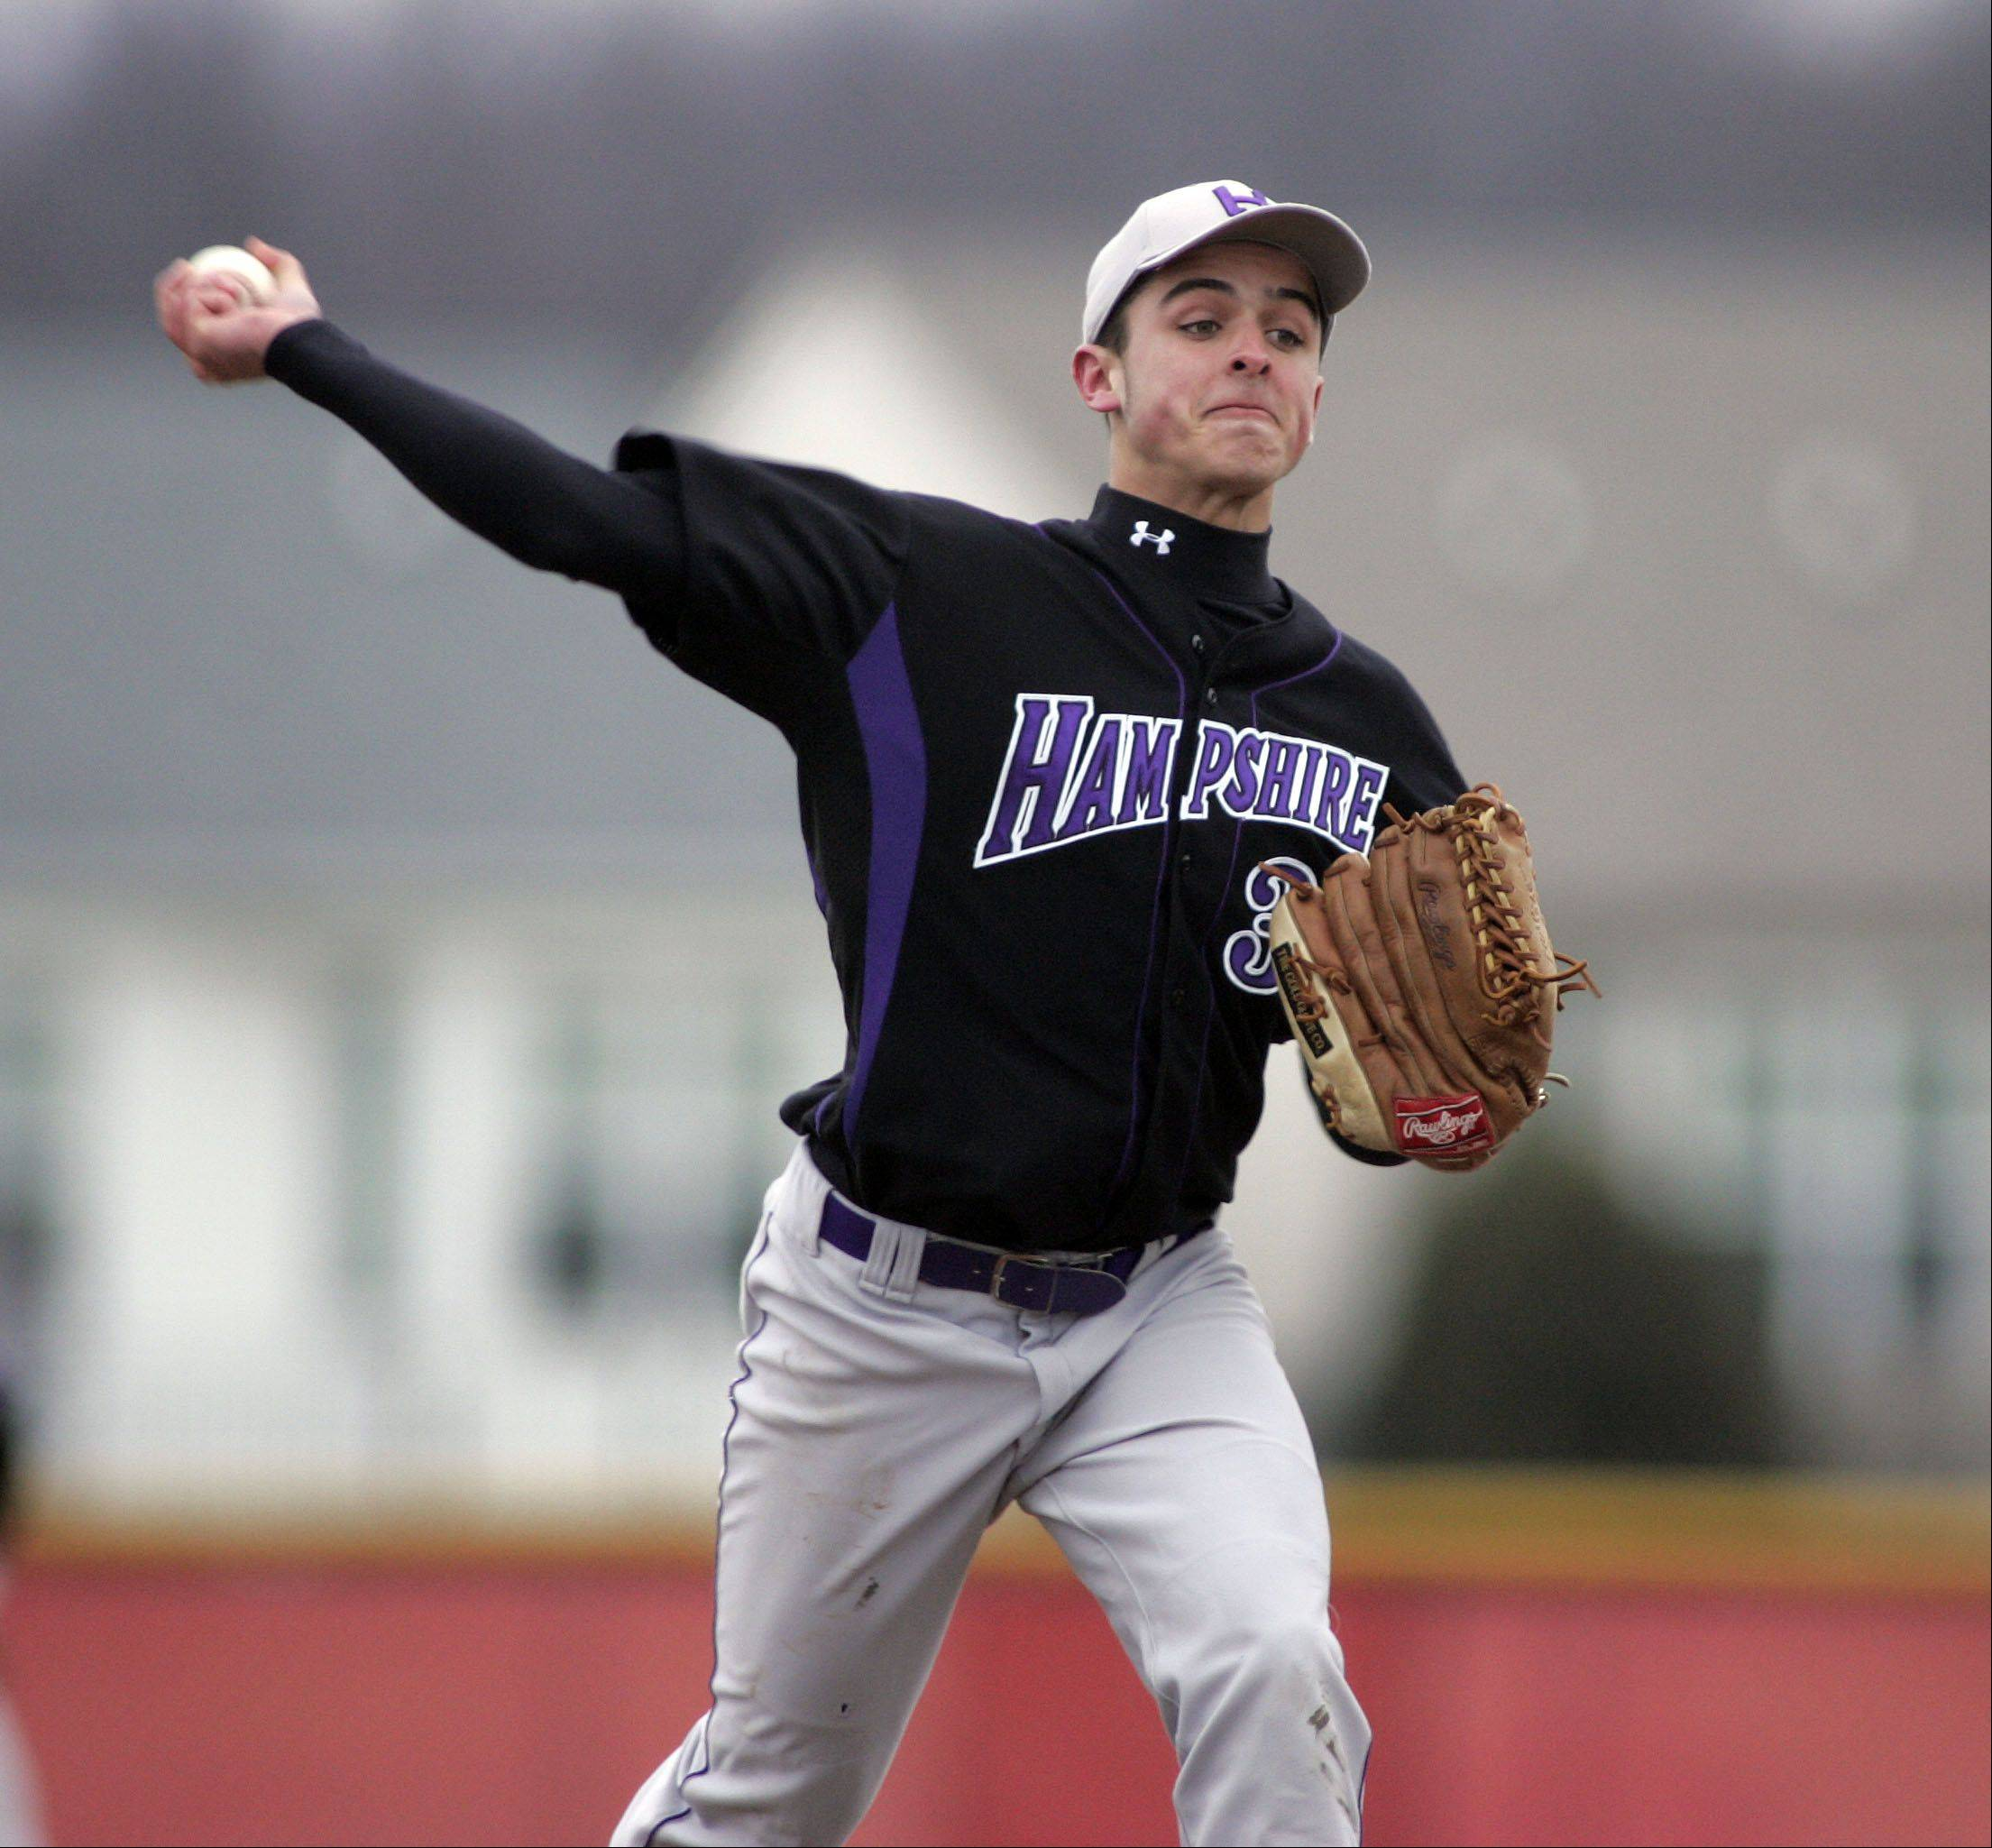 Hampshire's Michael Dumoulin delivers a pitch during Hampshire at Huntley baseball Tuesday.